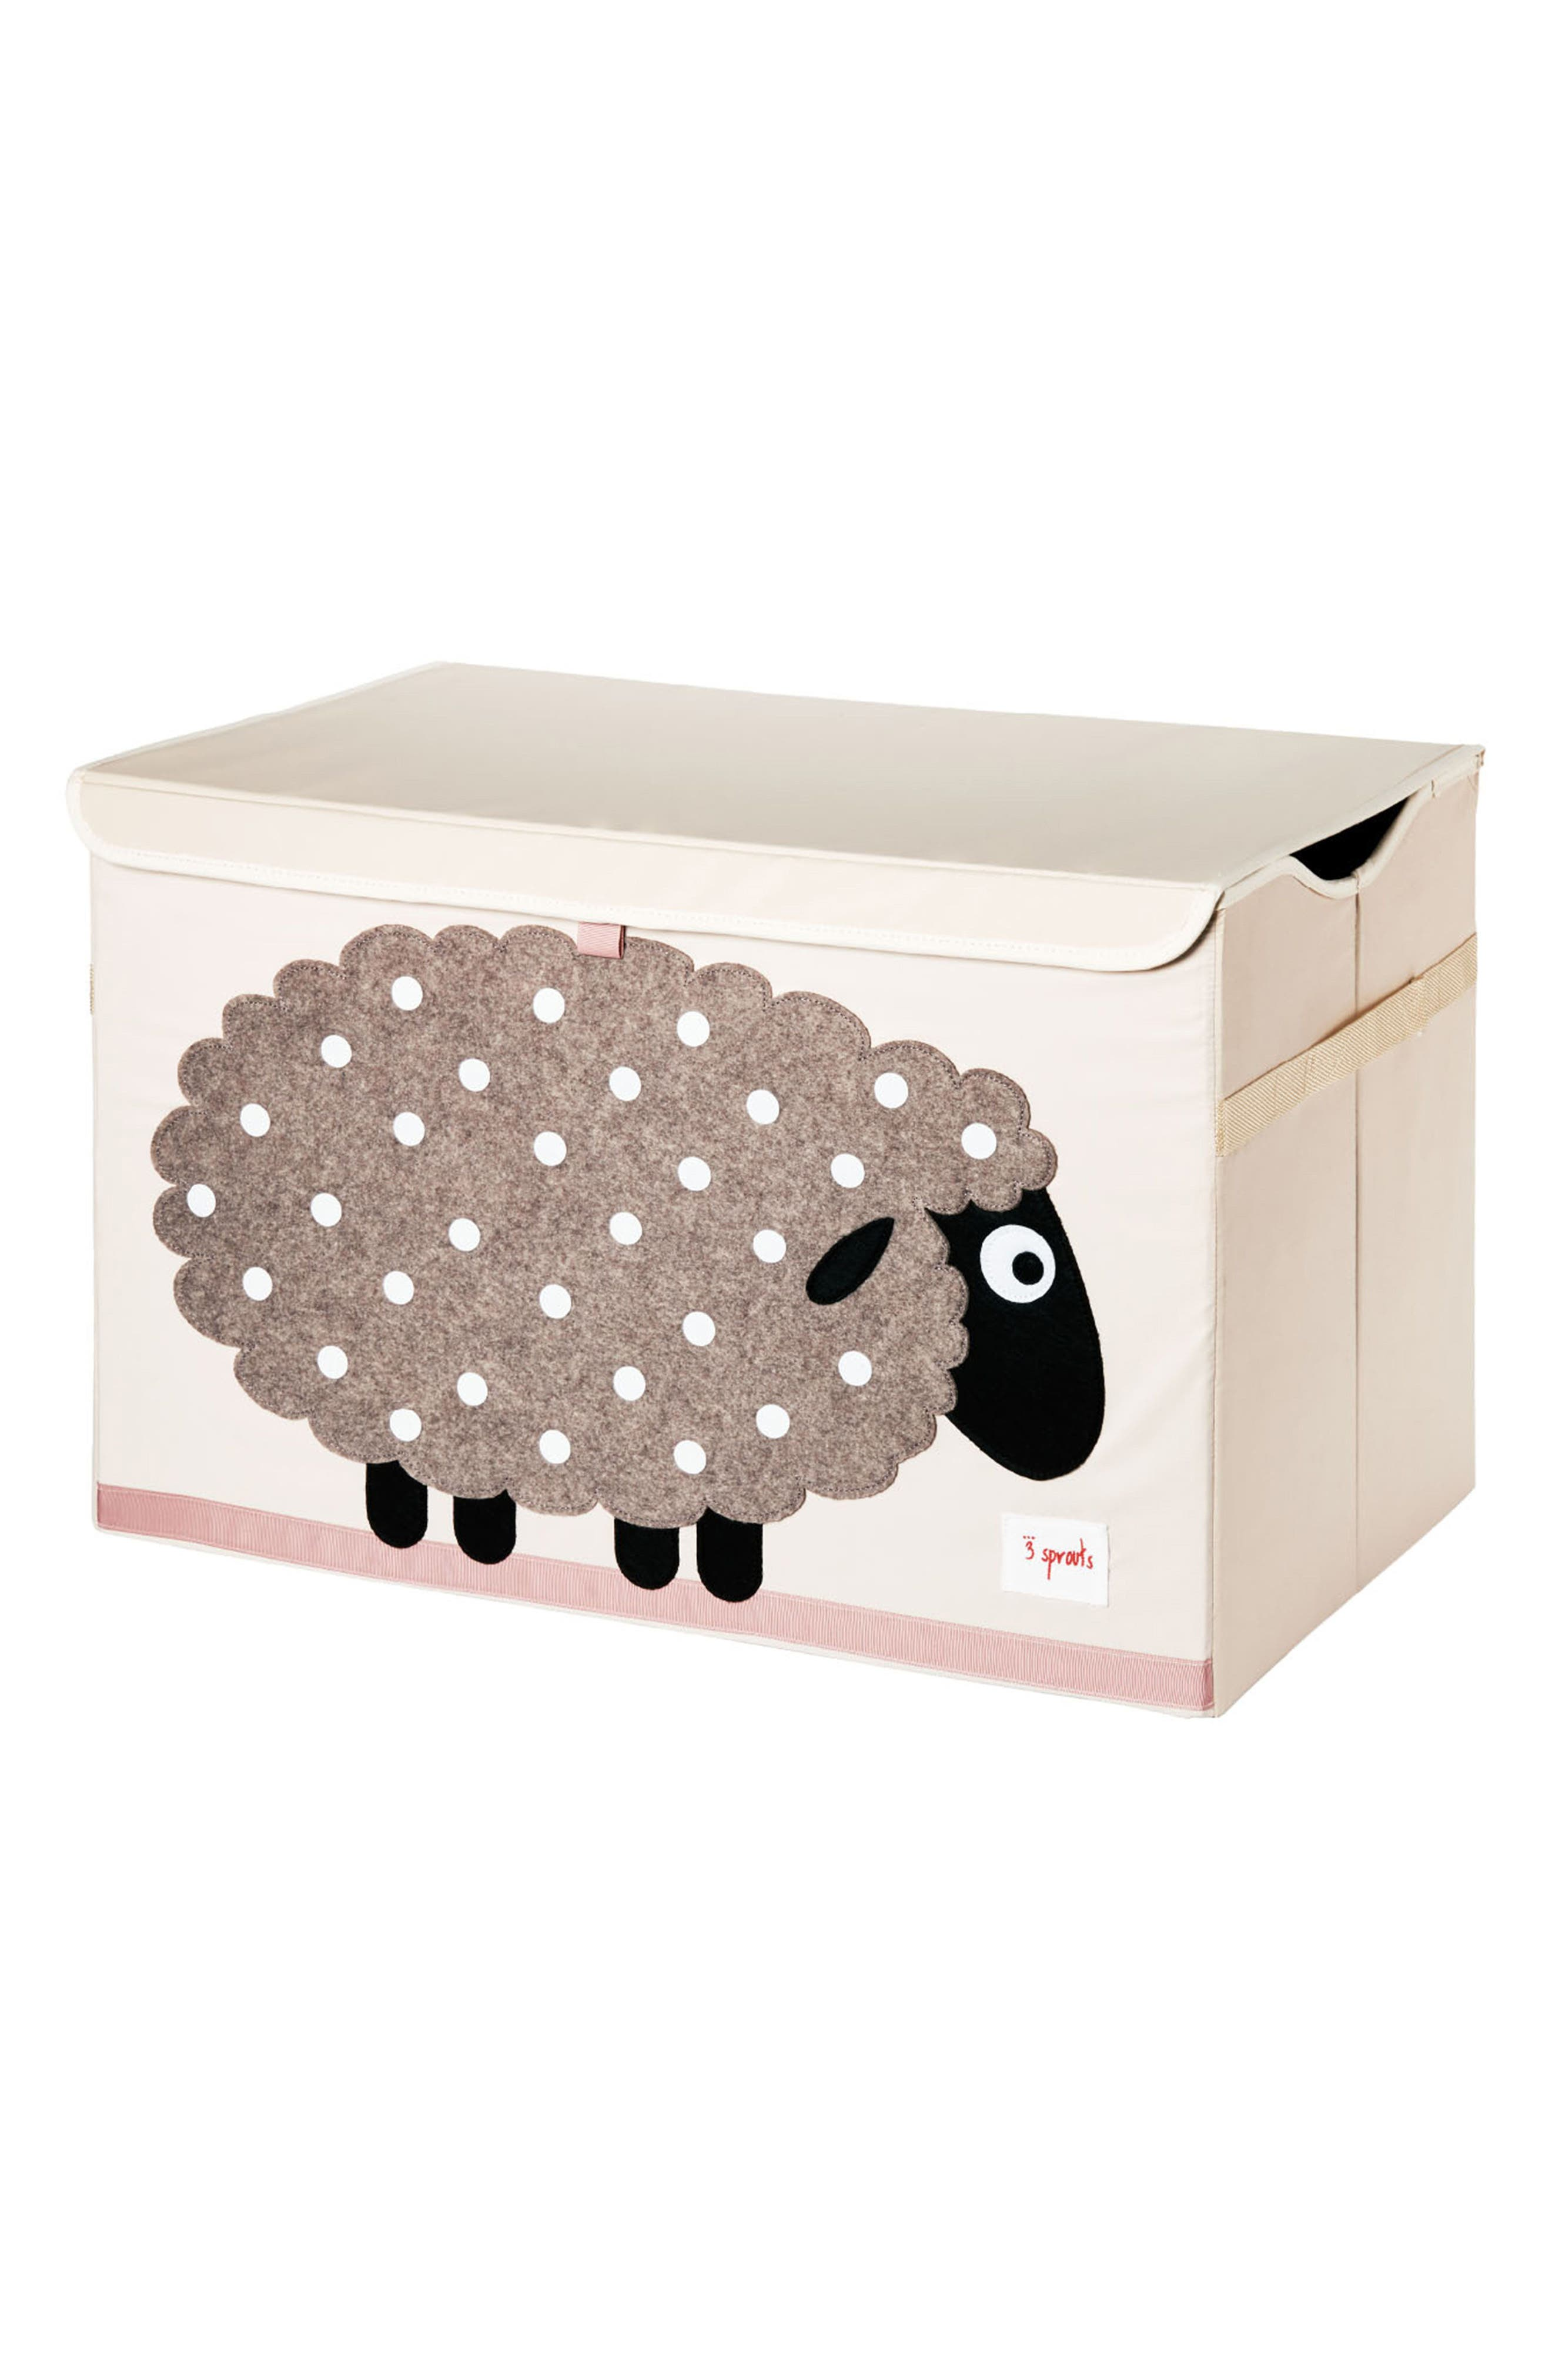 Sheep Toy Chest,                             Main thumbnail 1, color,                             Beige